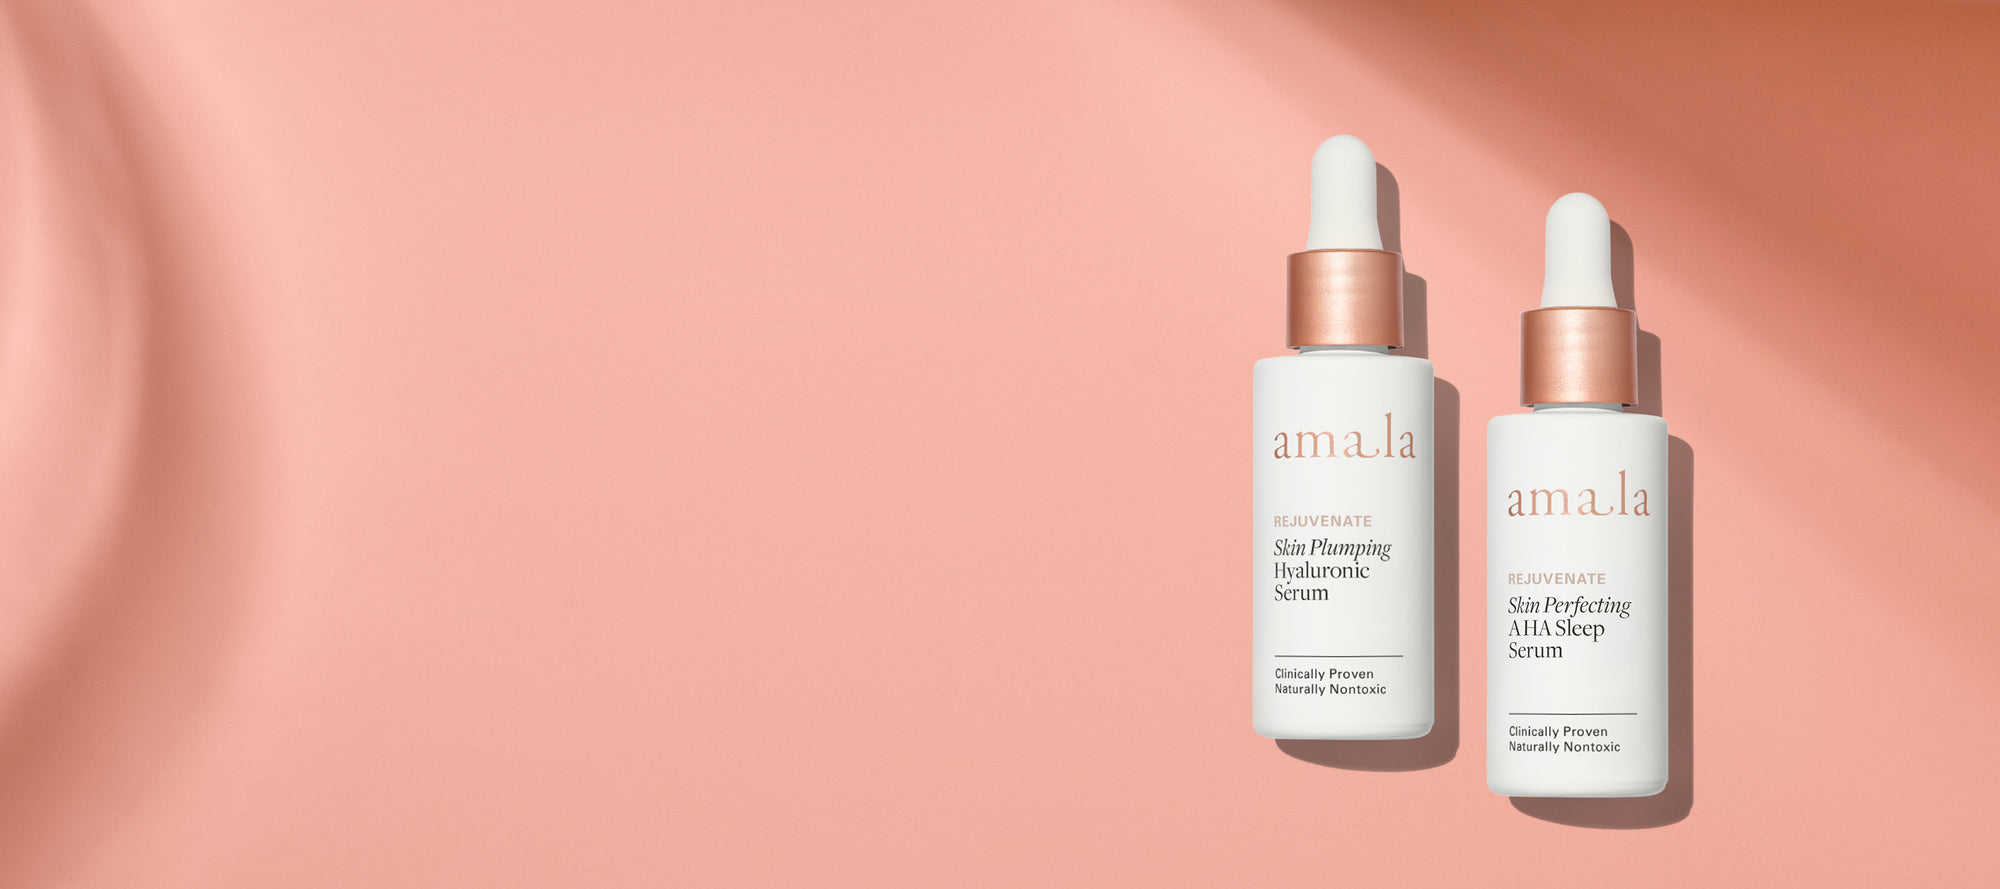 Immerse Your Skin: Amala Skin Plumping Hyaluronic Serum & Skin Perfecting AHA Sleep Serum on colored, textured background